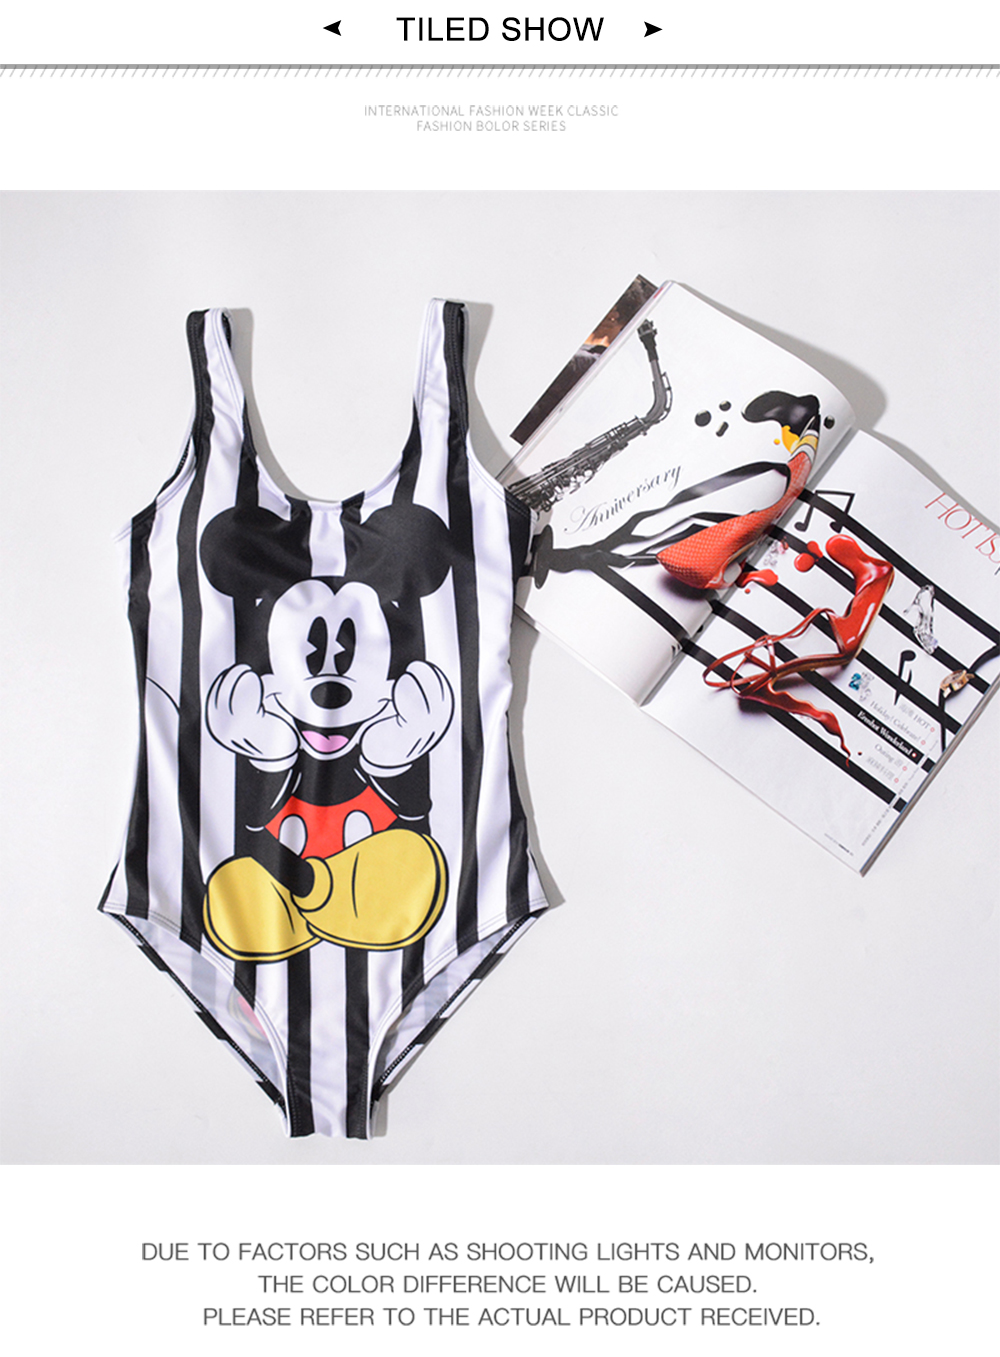 17 Pattern Cartoon Styles Women One Piece Swimsuit 3D Print Swimwear One-Piece Suits full suit for swimming  one piece swimsuit 15